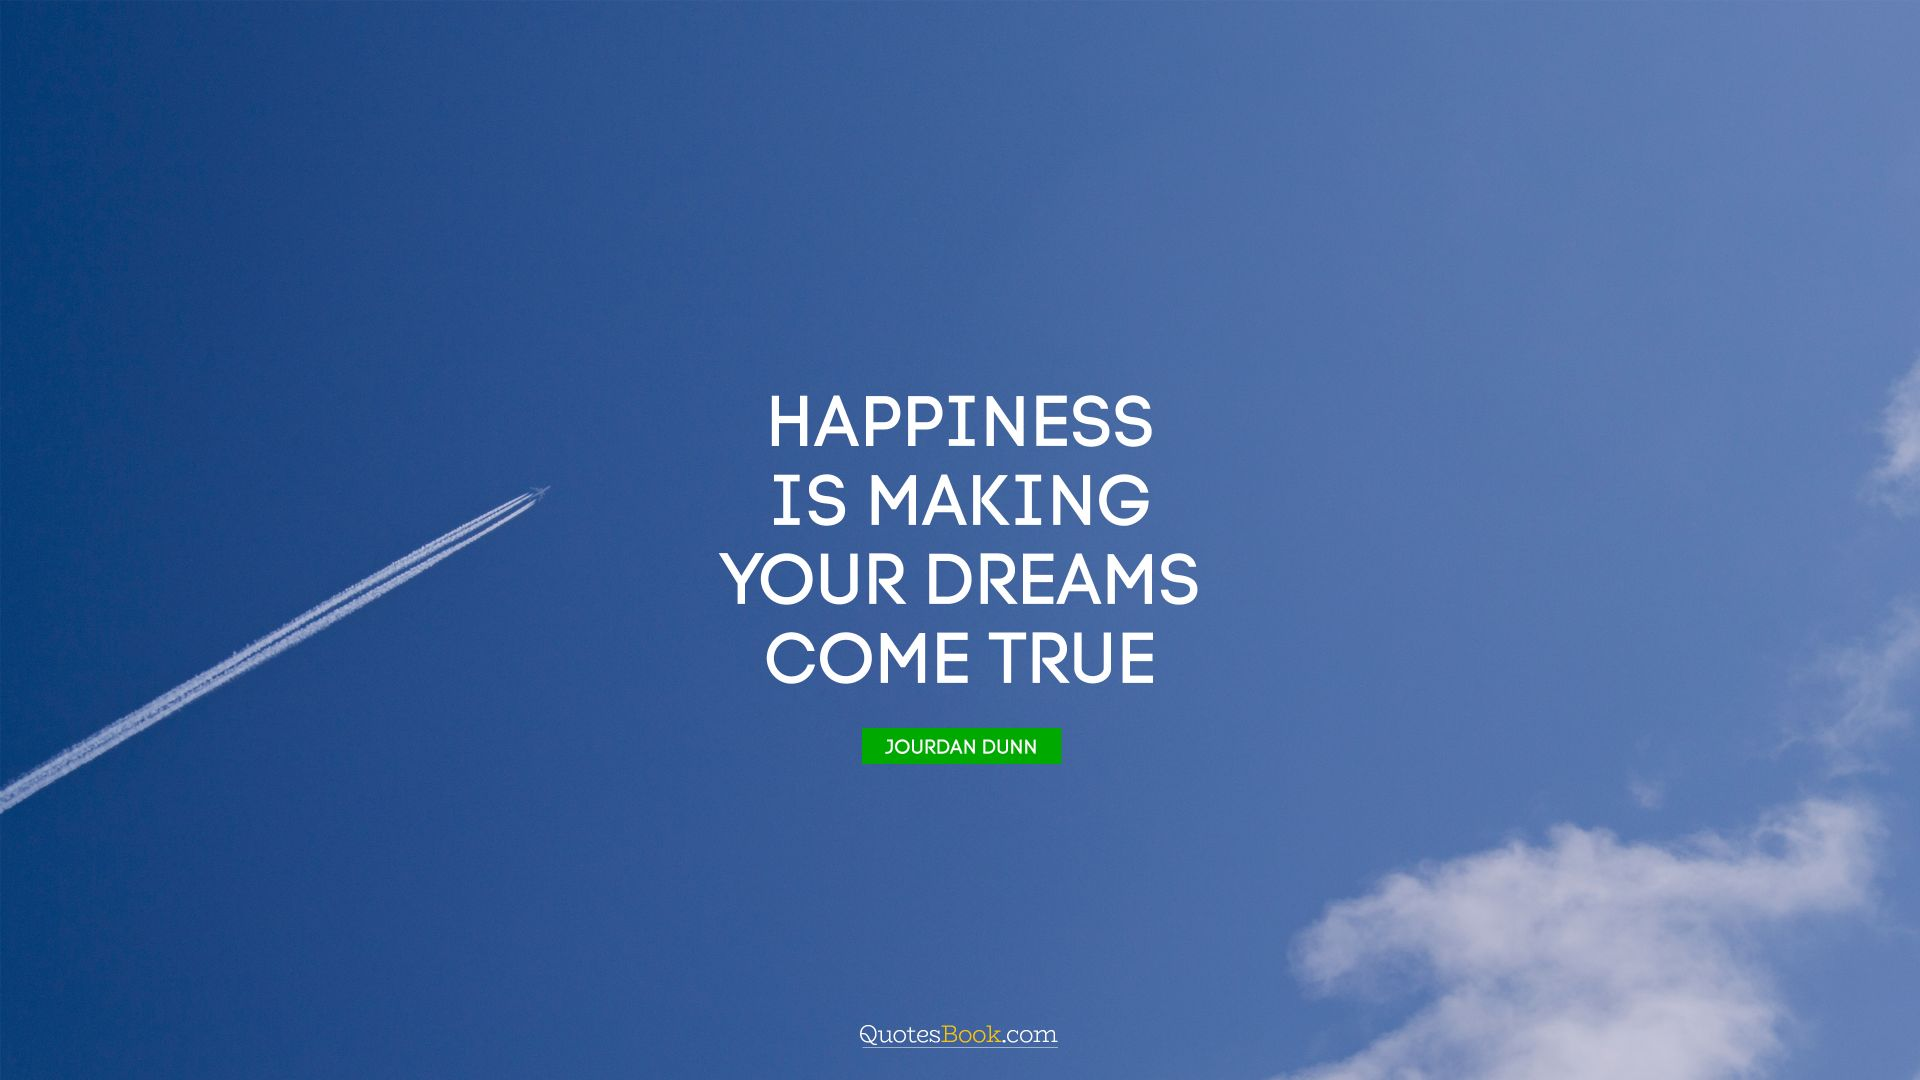 Happiness is making your dreams come true. - Quote by Jourdan Dunn